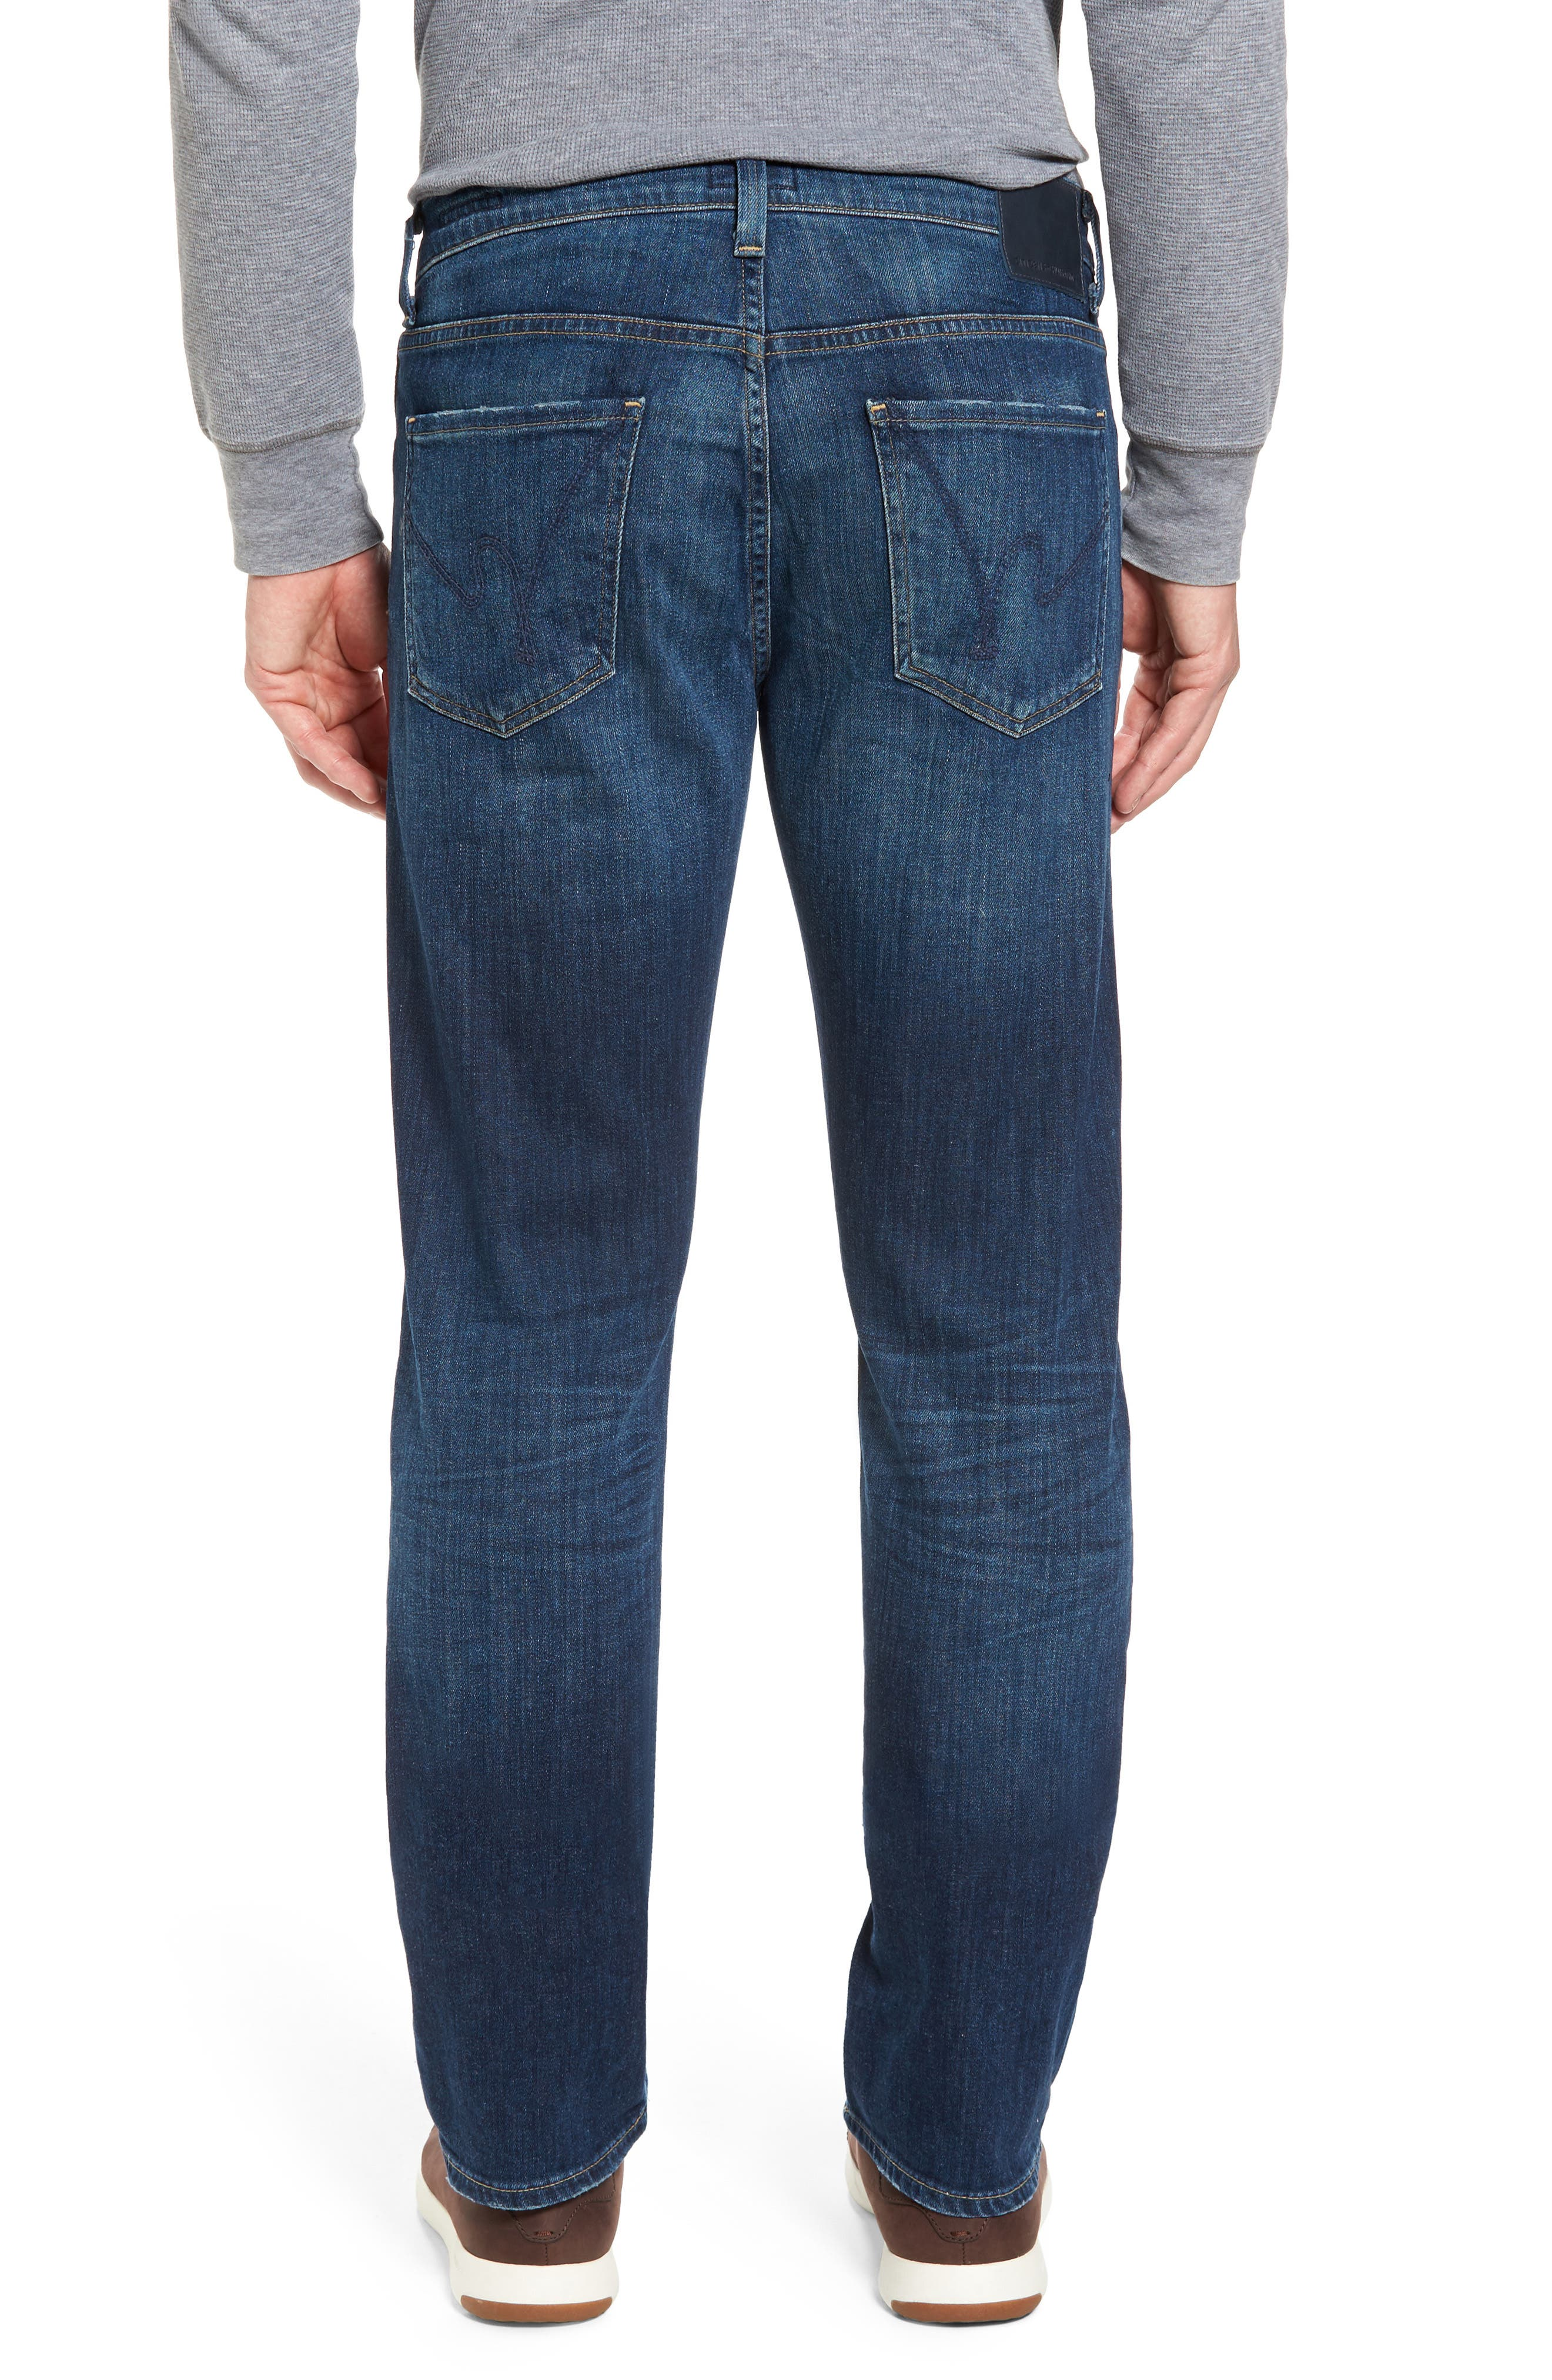 Sid Straight Fit Jeans,                             Alternate thumbnail 2, color,                             410